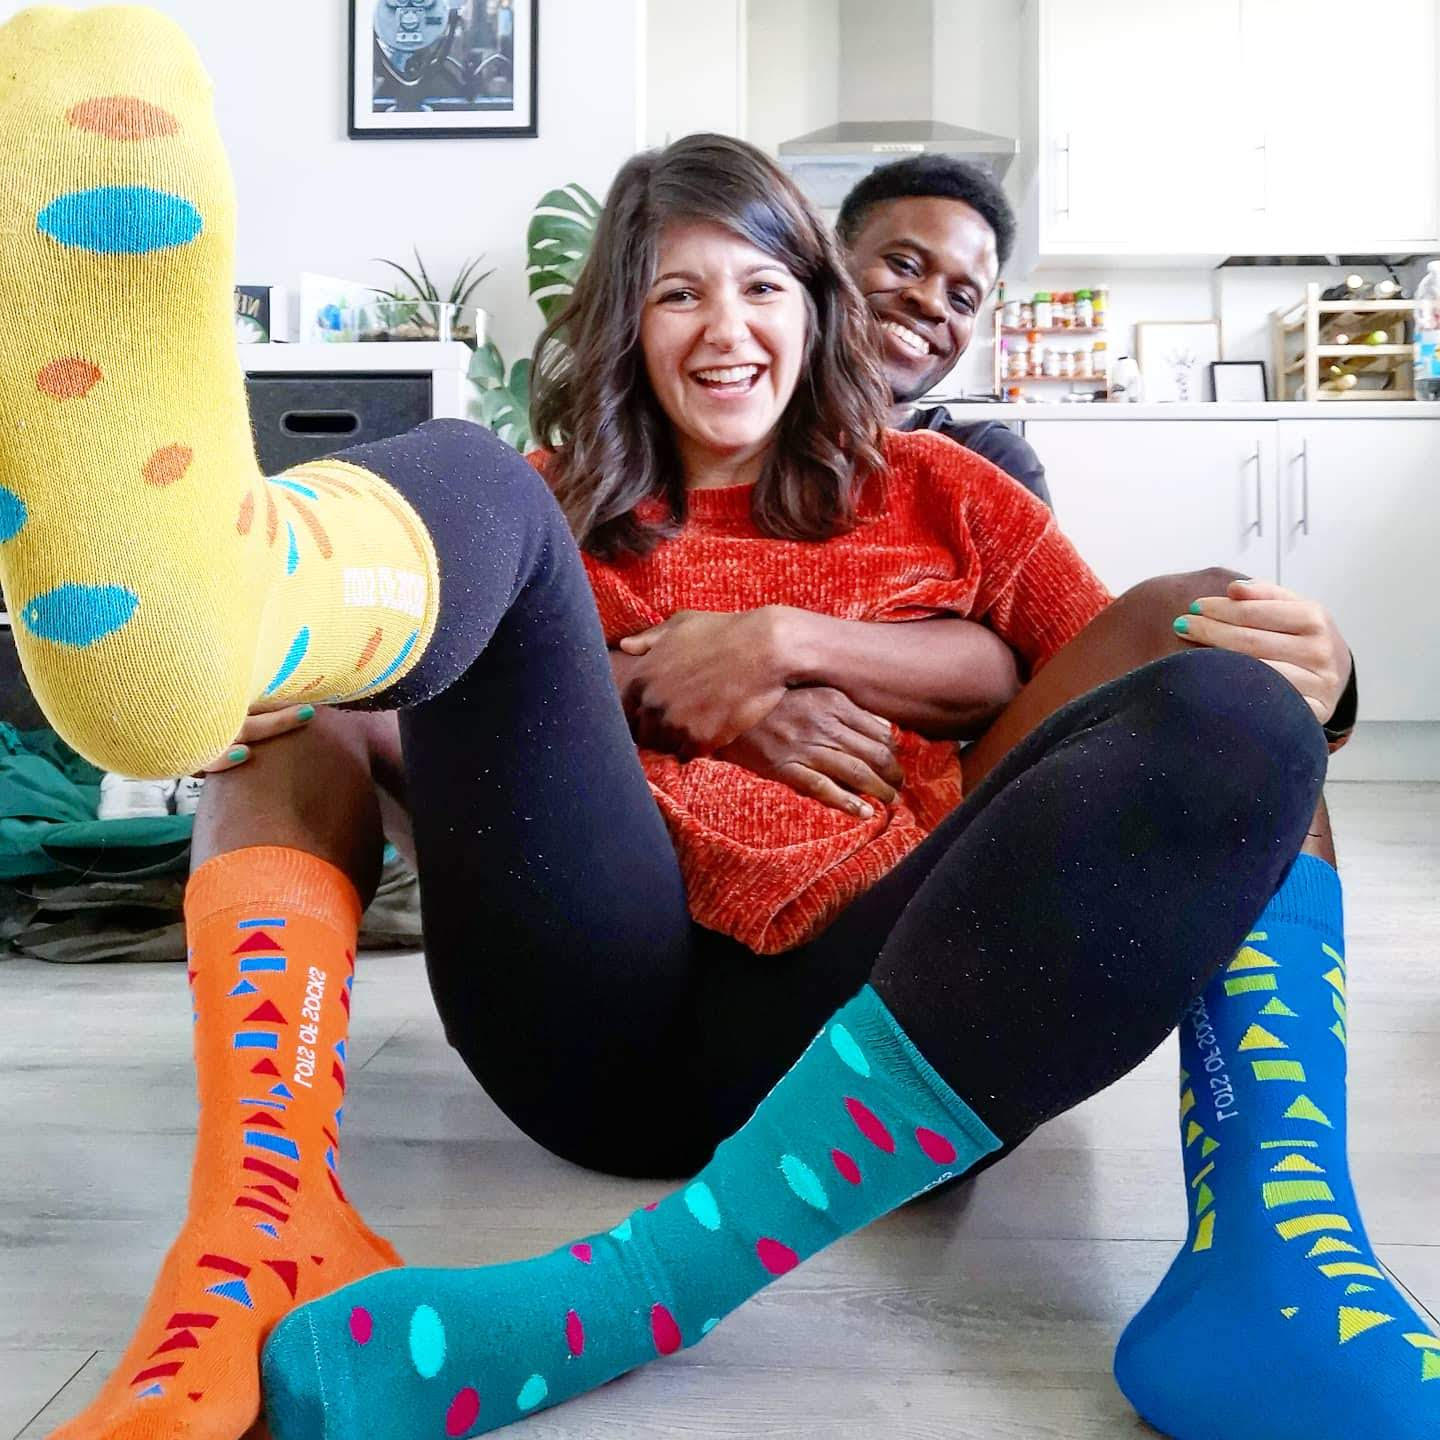 MY OCD experience - two people laughing with odd socks on